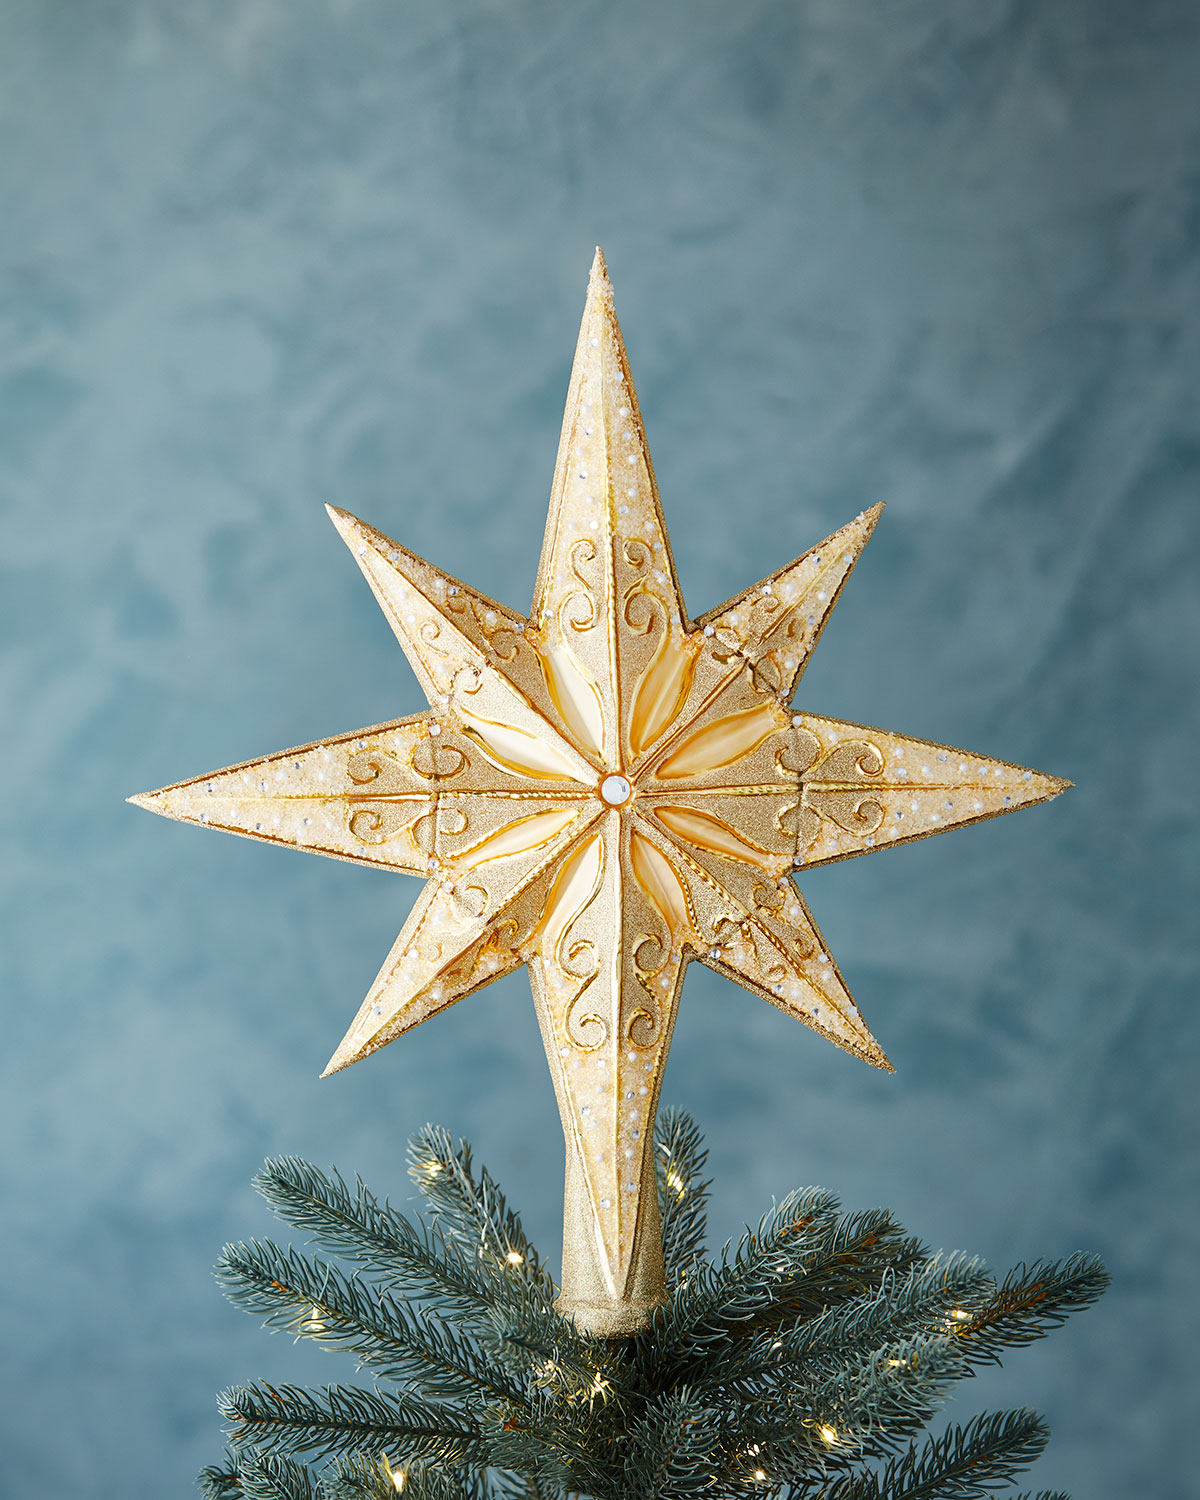 20 unique christmas tree toppers cool ideas for tree toppers - Christmas Tree Topper